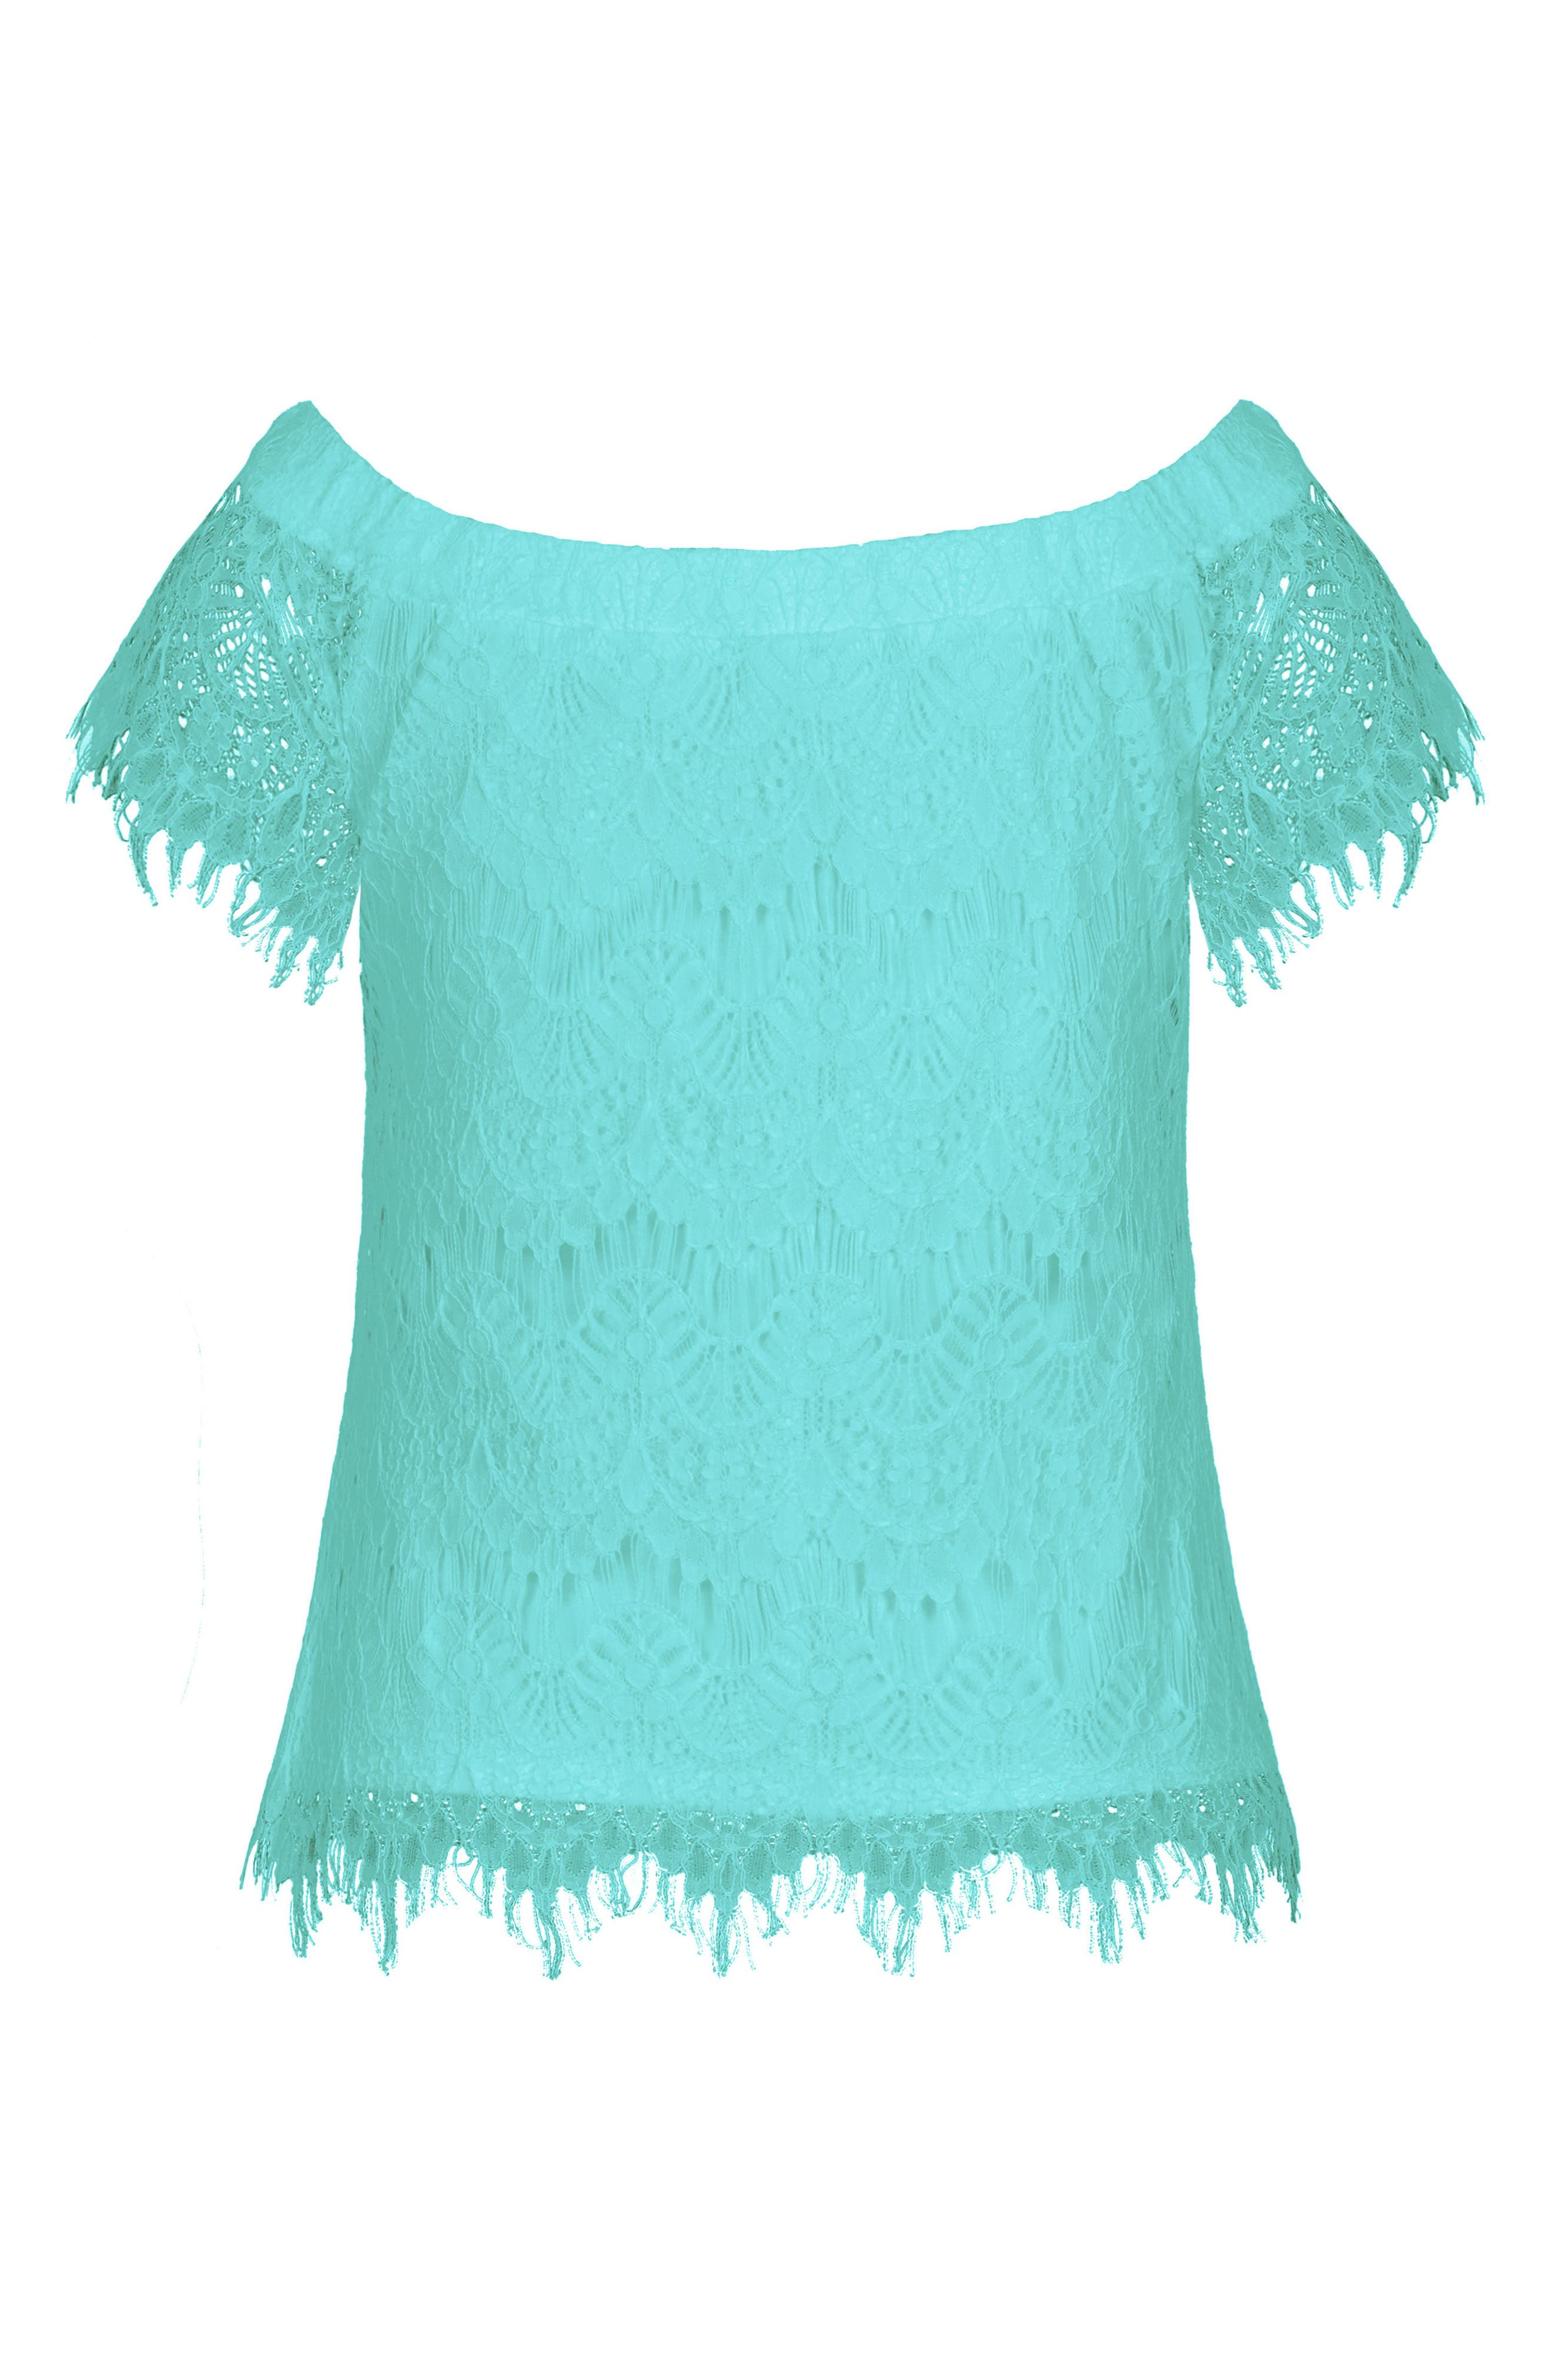 Lacy Off the Shoulder Top,                             Alternate thumbnail 3, color,                             Mint